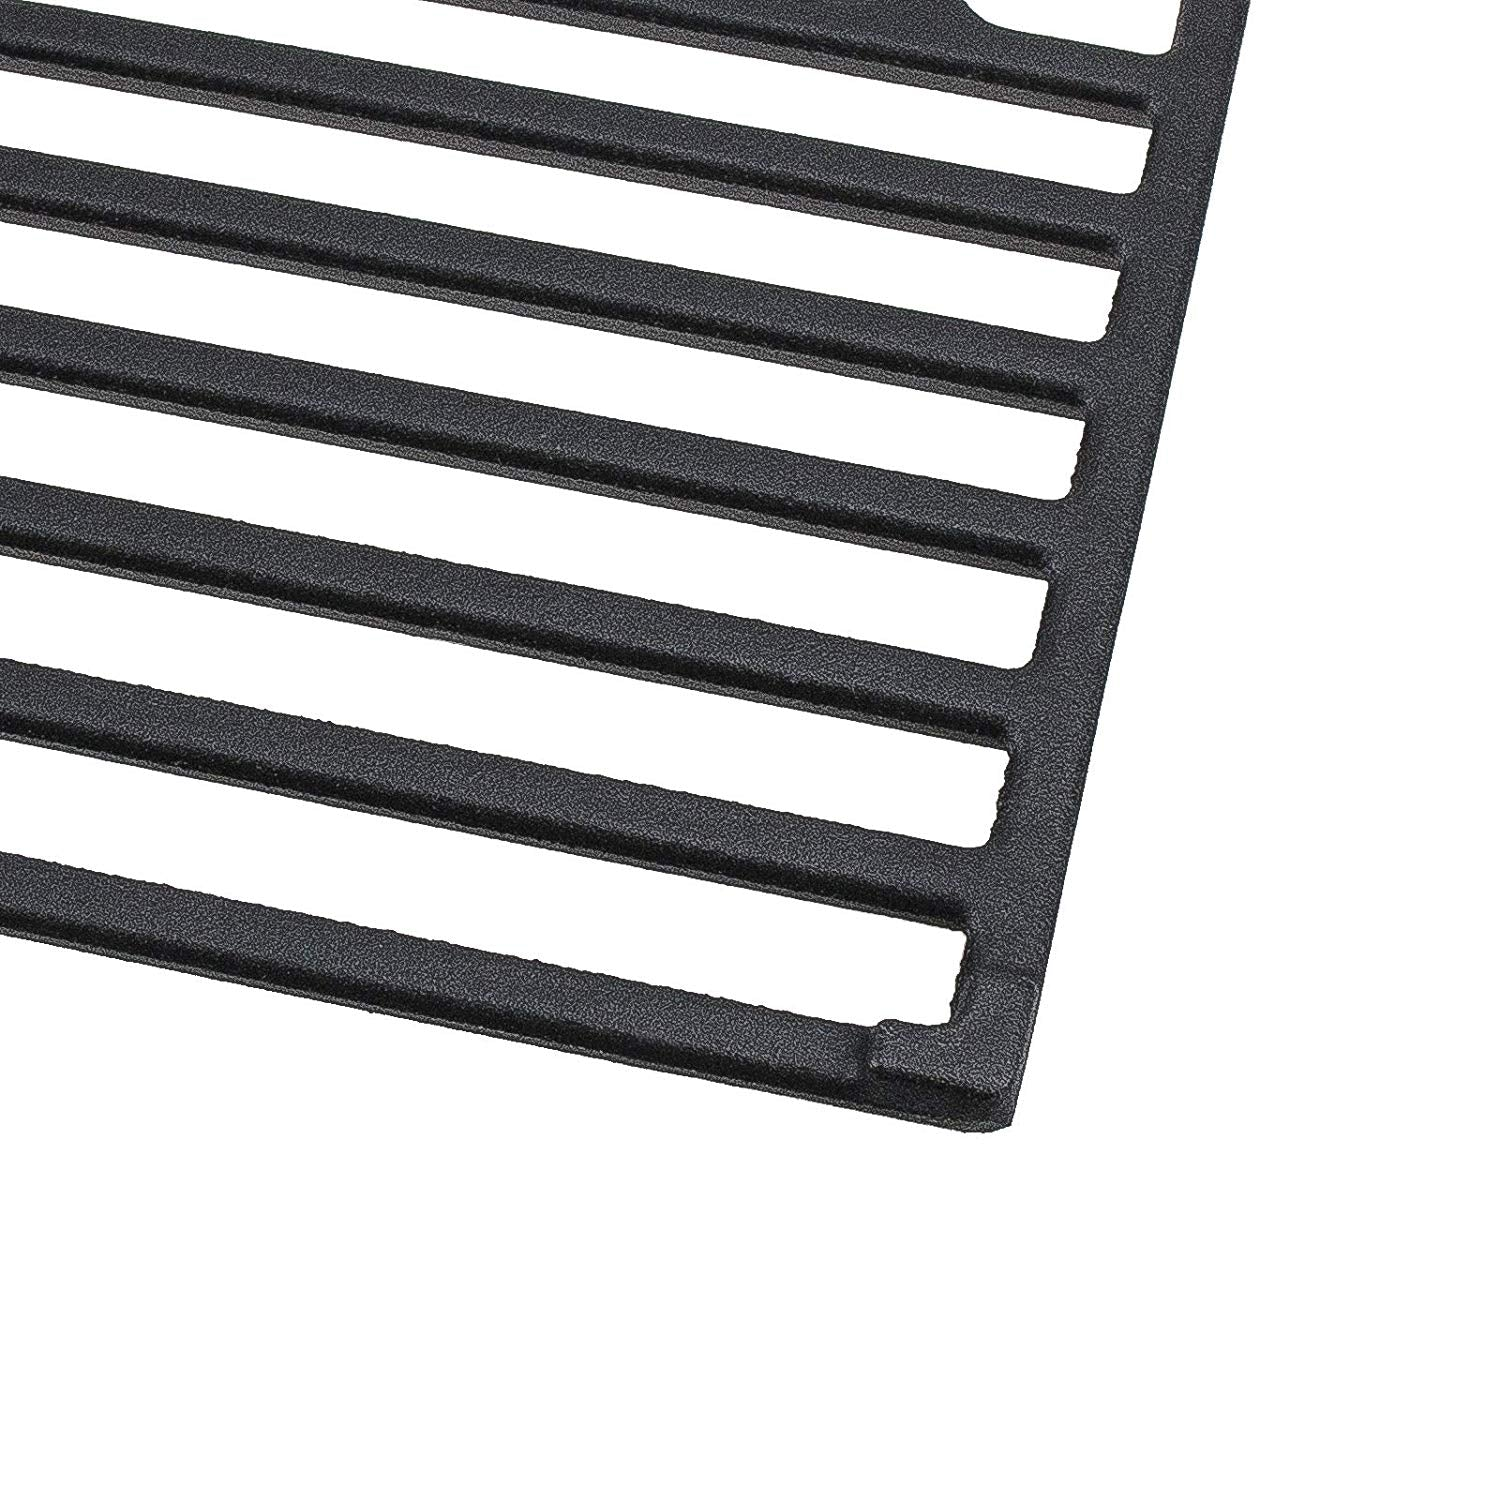 720-0783E 720-0670A SHINESTAR Grill Grates for 4 Burner Nexgrill 720-0830H 17 inch Cooking Grates Replacement Parts 2 Pack